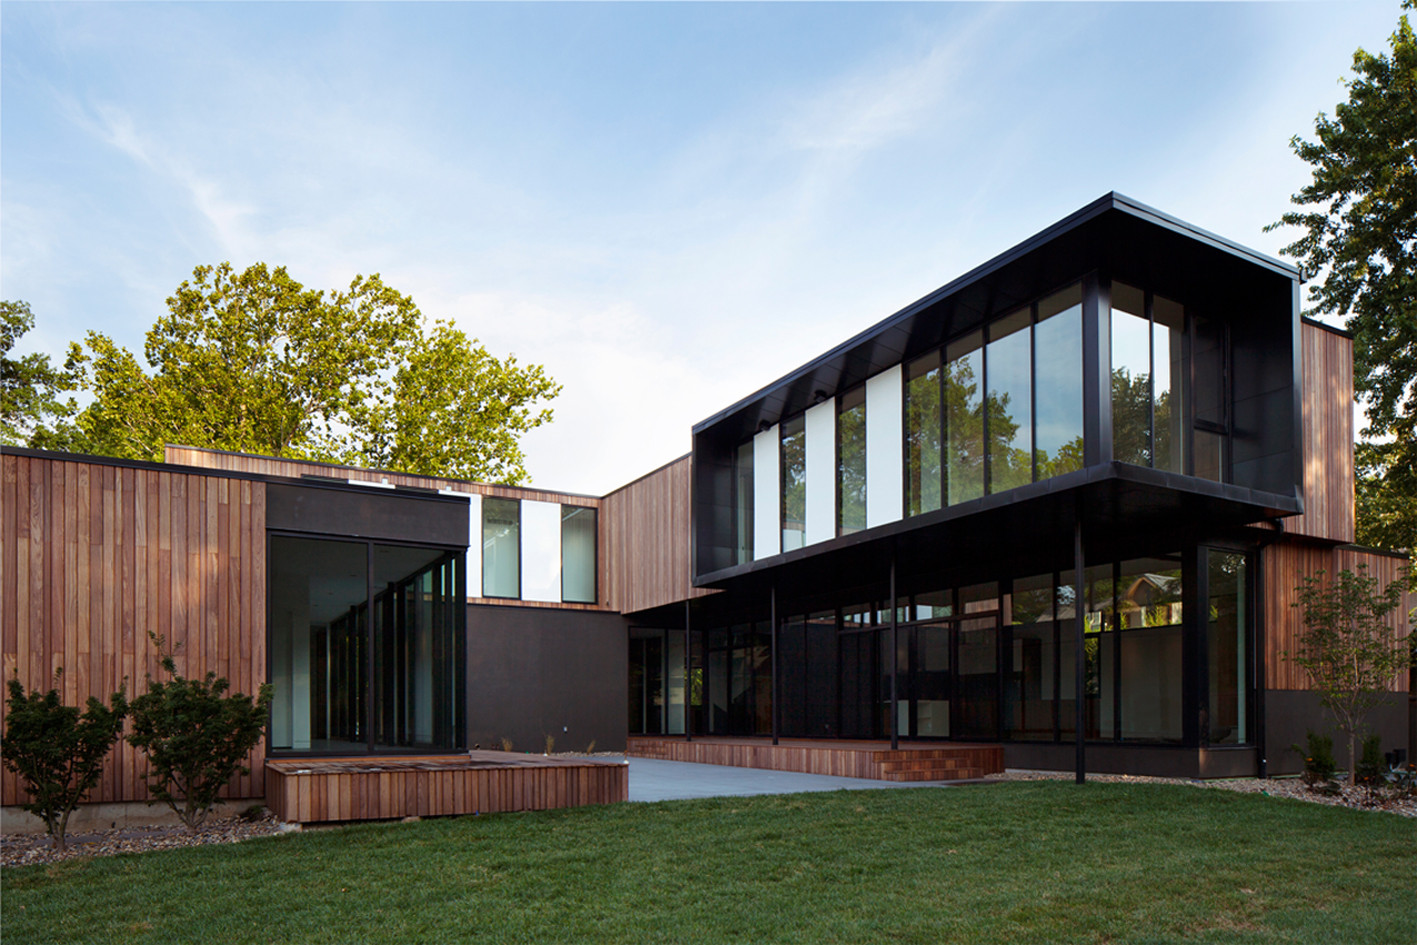 Gallery of baulinder haus hufft projects 7 for Modern cube house design